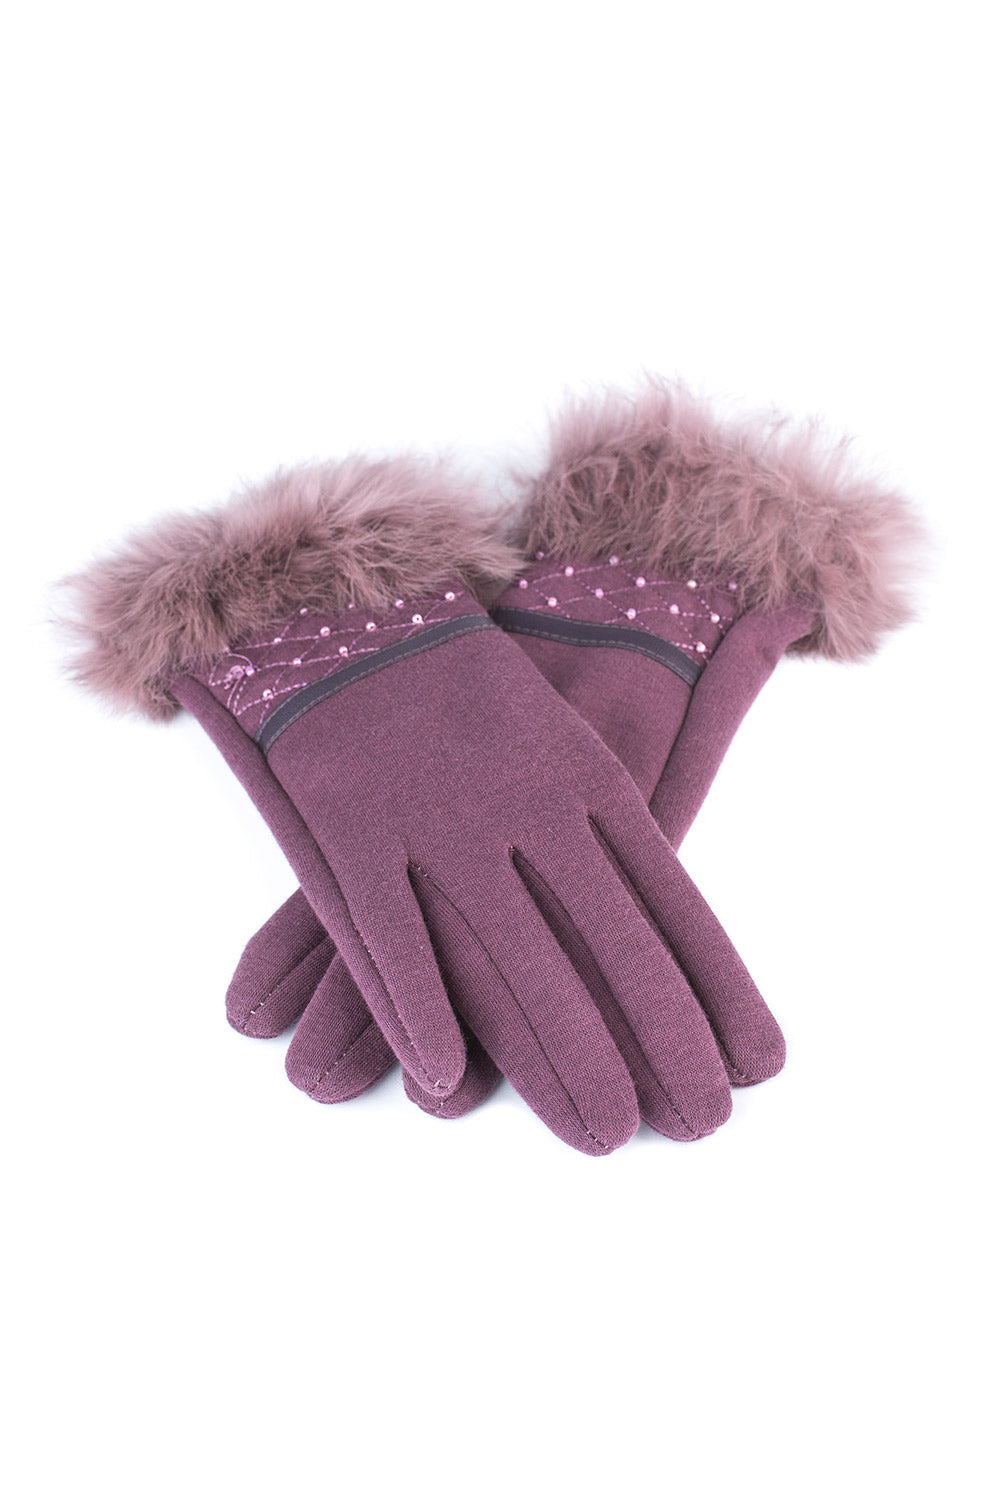 Type 2 Fitted Fur Gloves